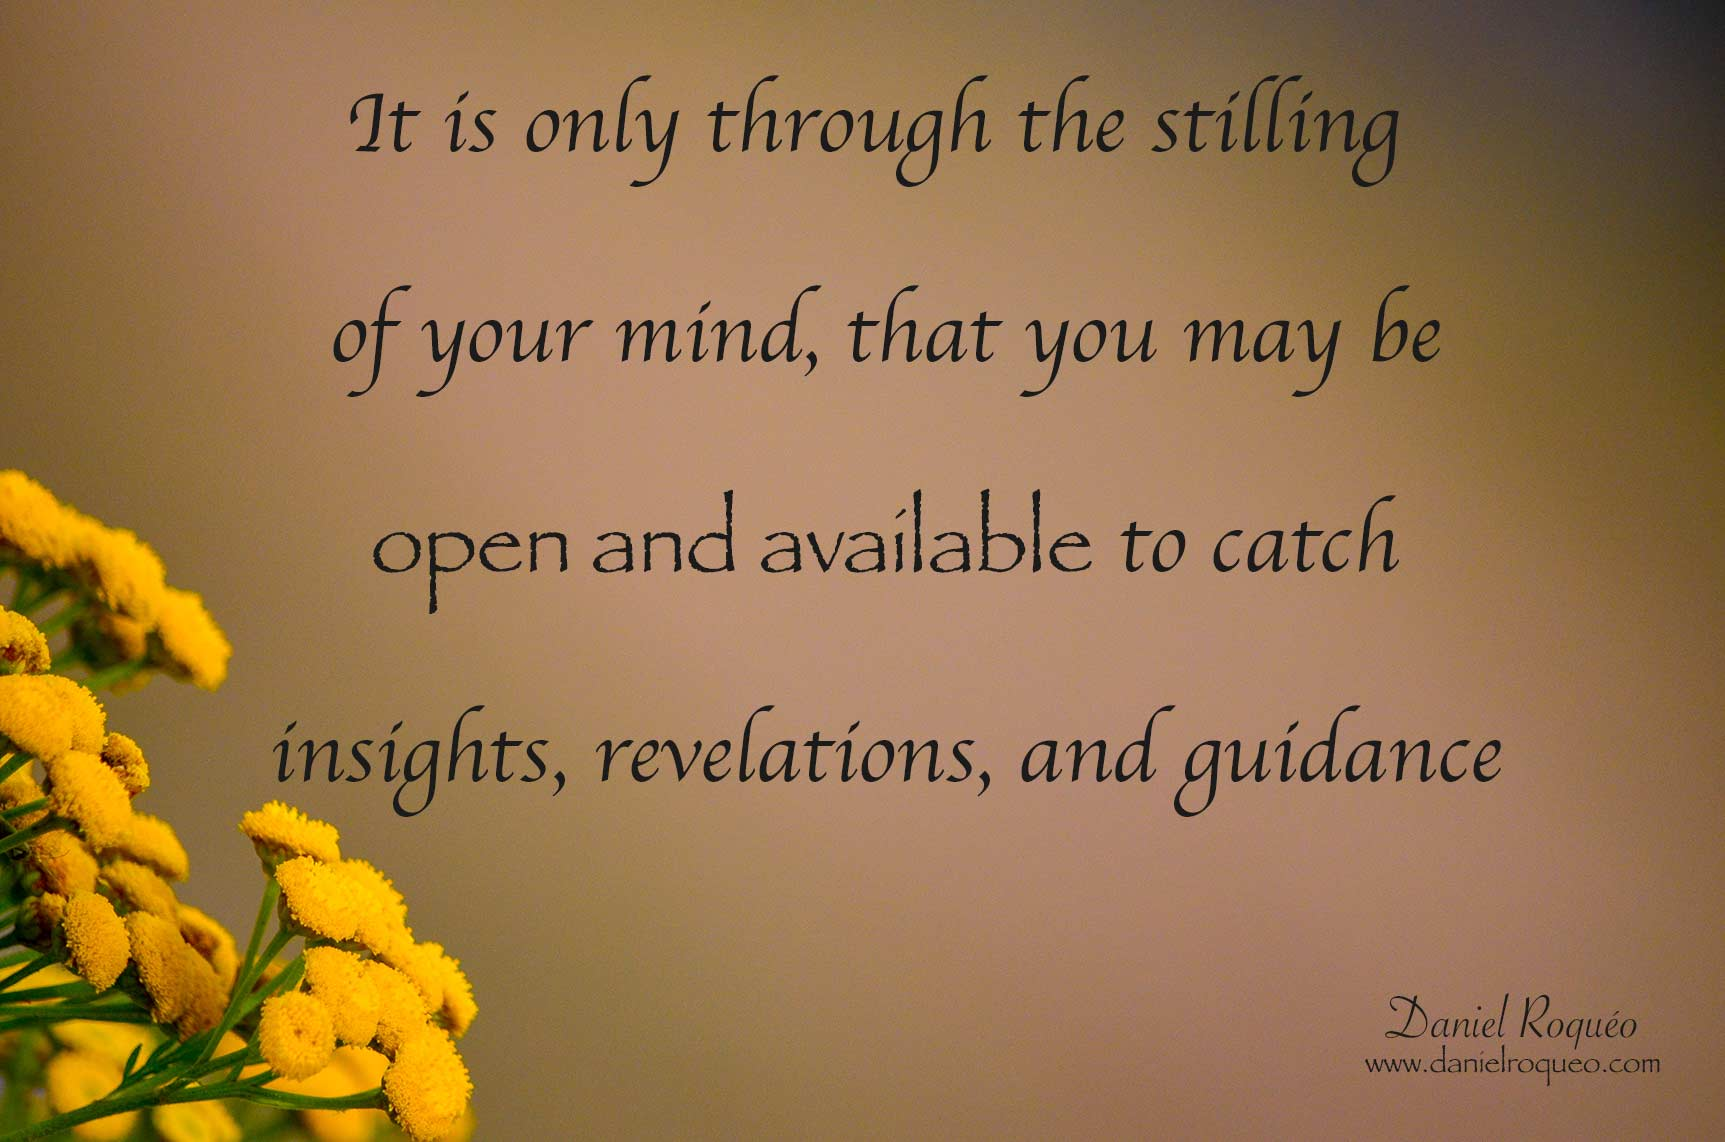 as you become still you make yourself open and available to catch insights and guidance